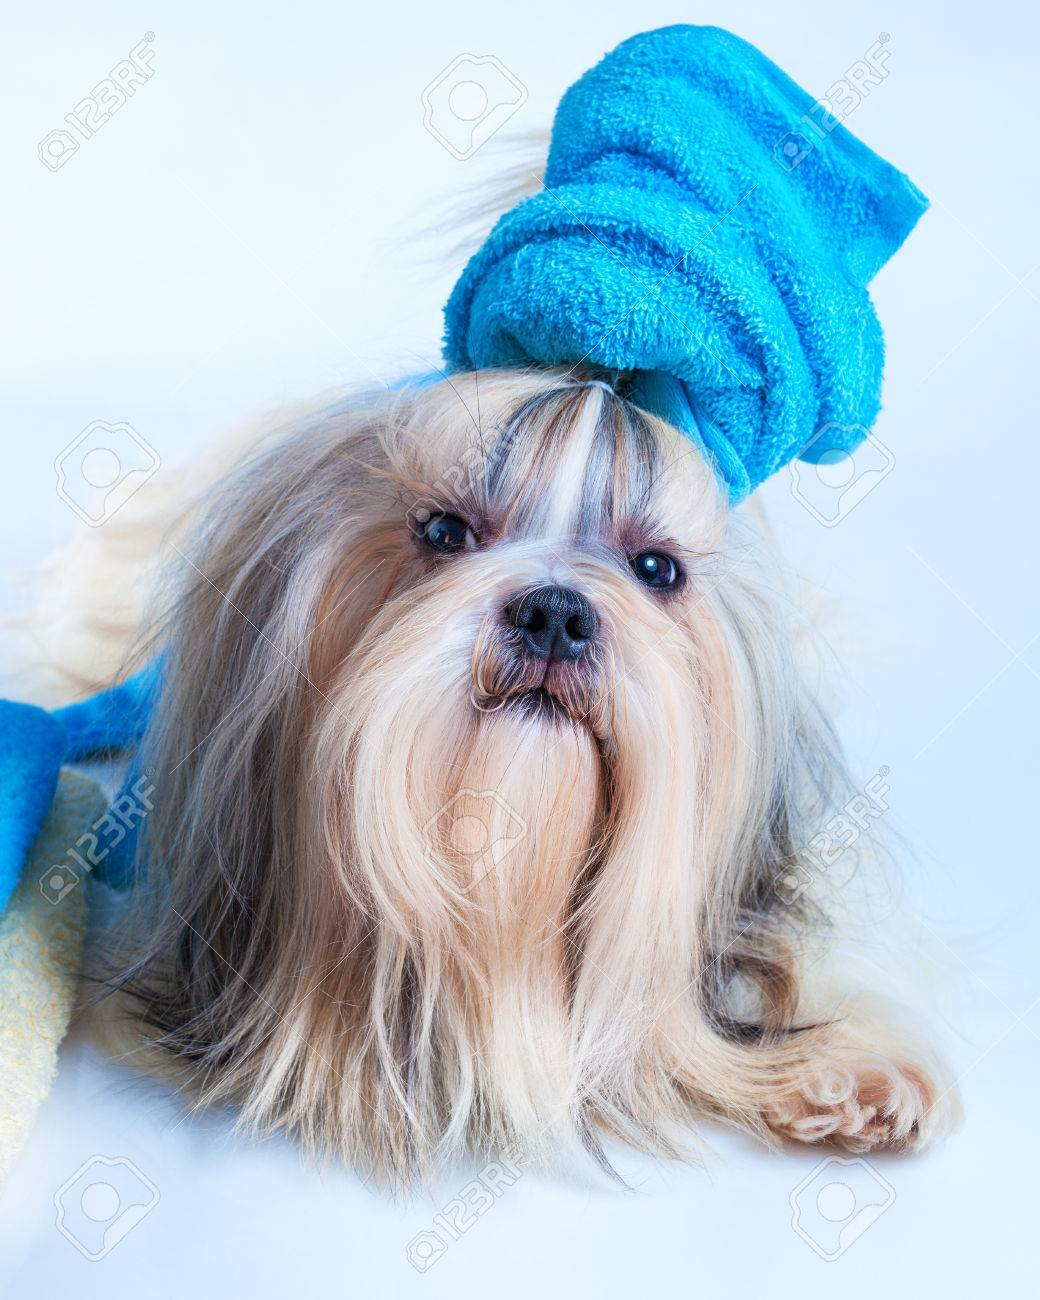 Shih Tzu Dog Hair Style With Towel In Grooming Salon Concept